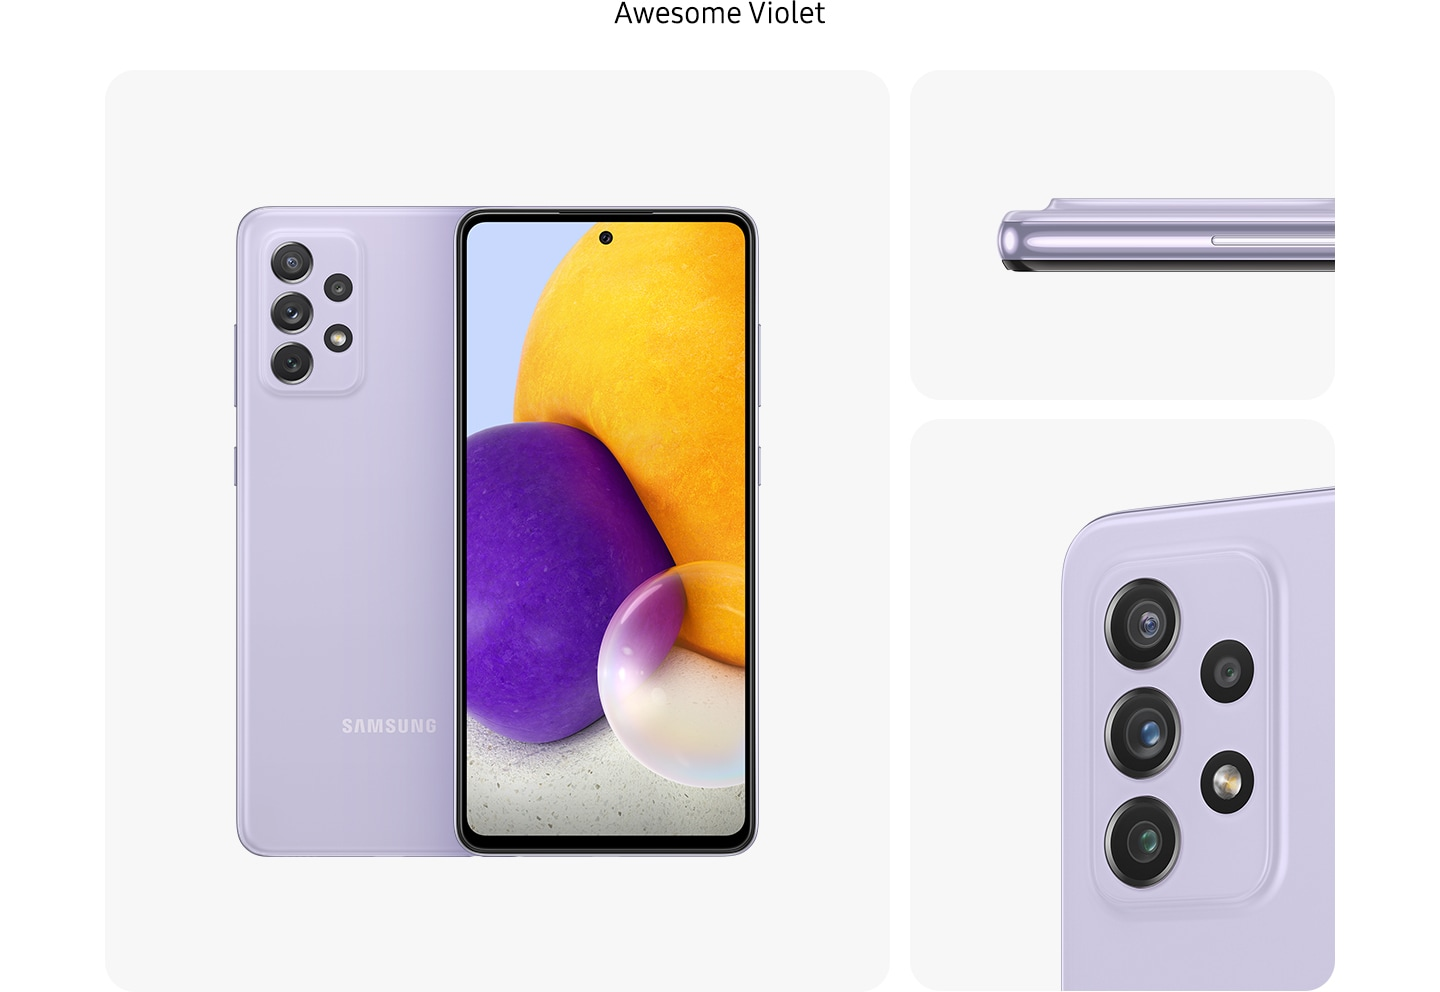 Galaxy A72 in Awesome Violet, seen from multiple angles to show the design: rear, front, side and close-up on the rear camera.